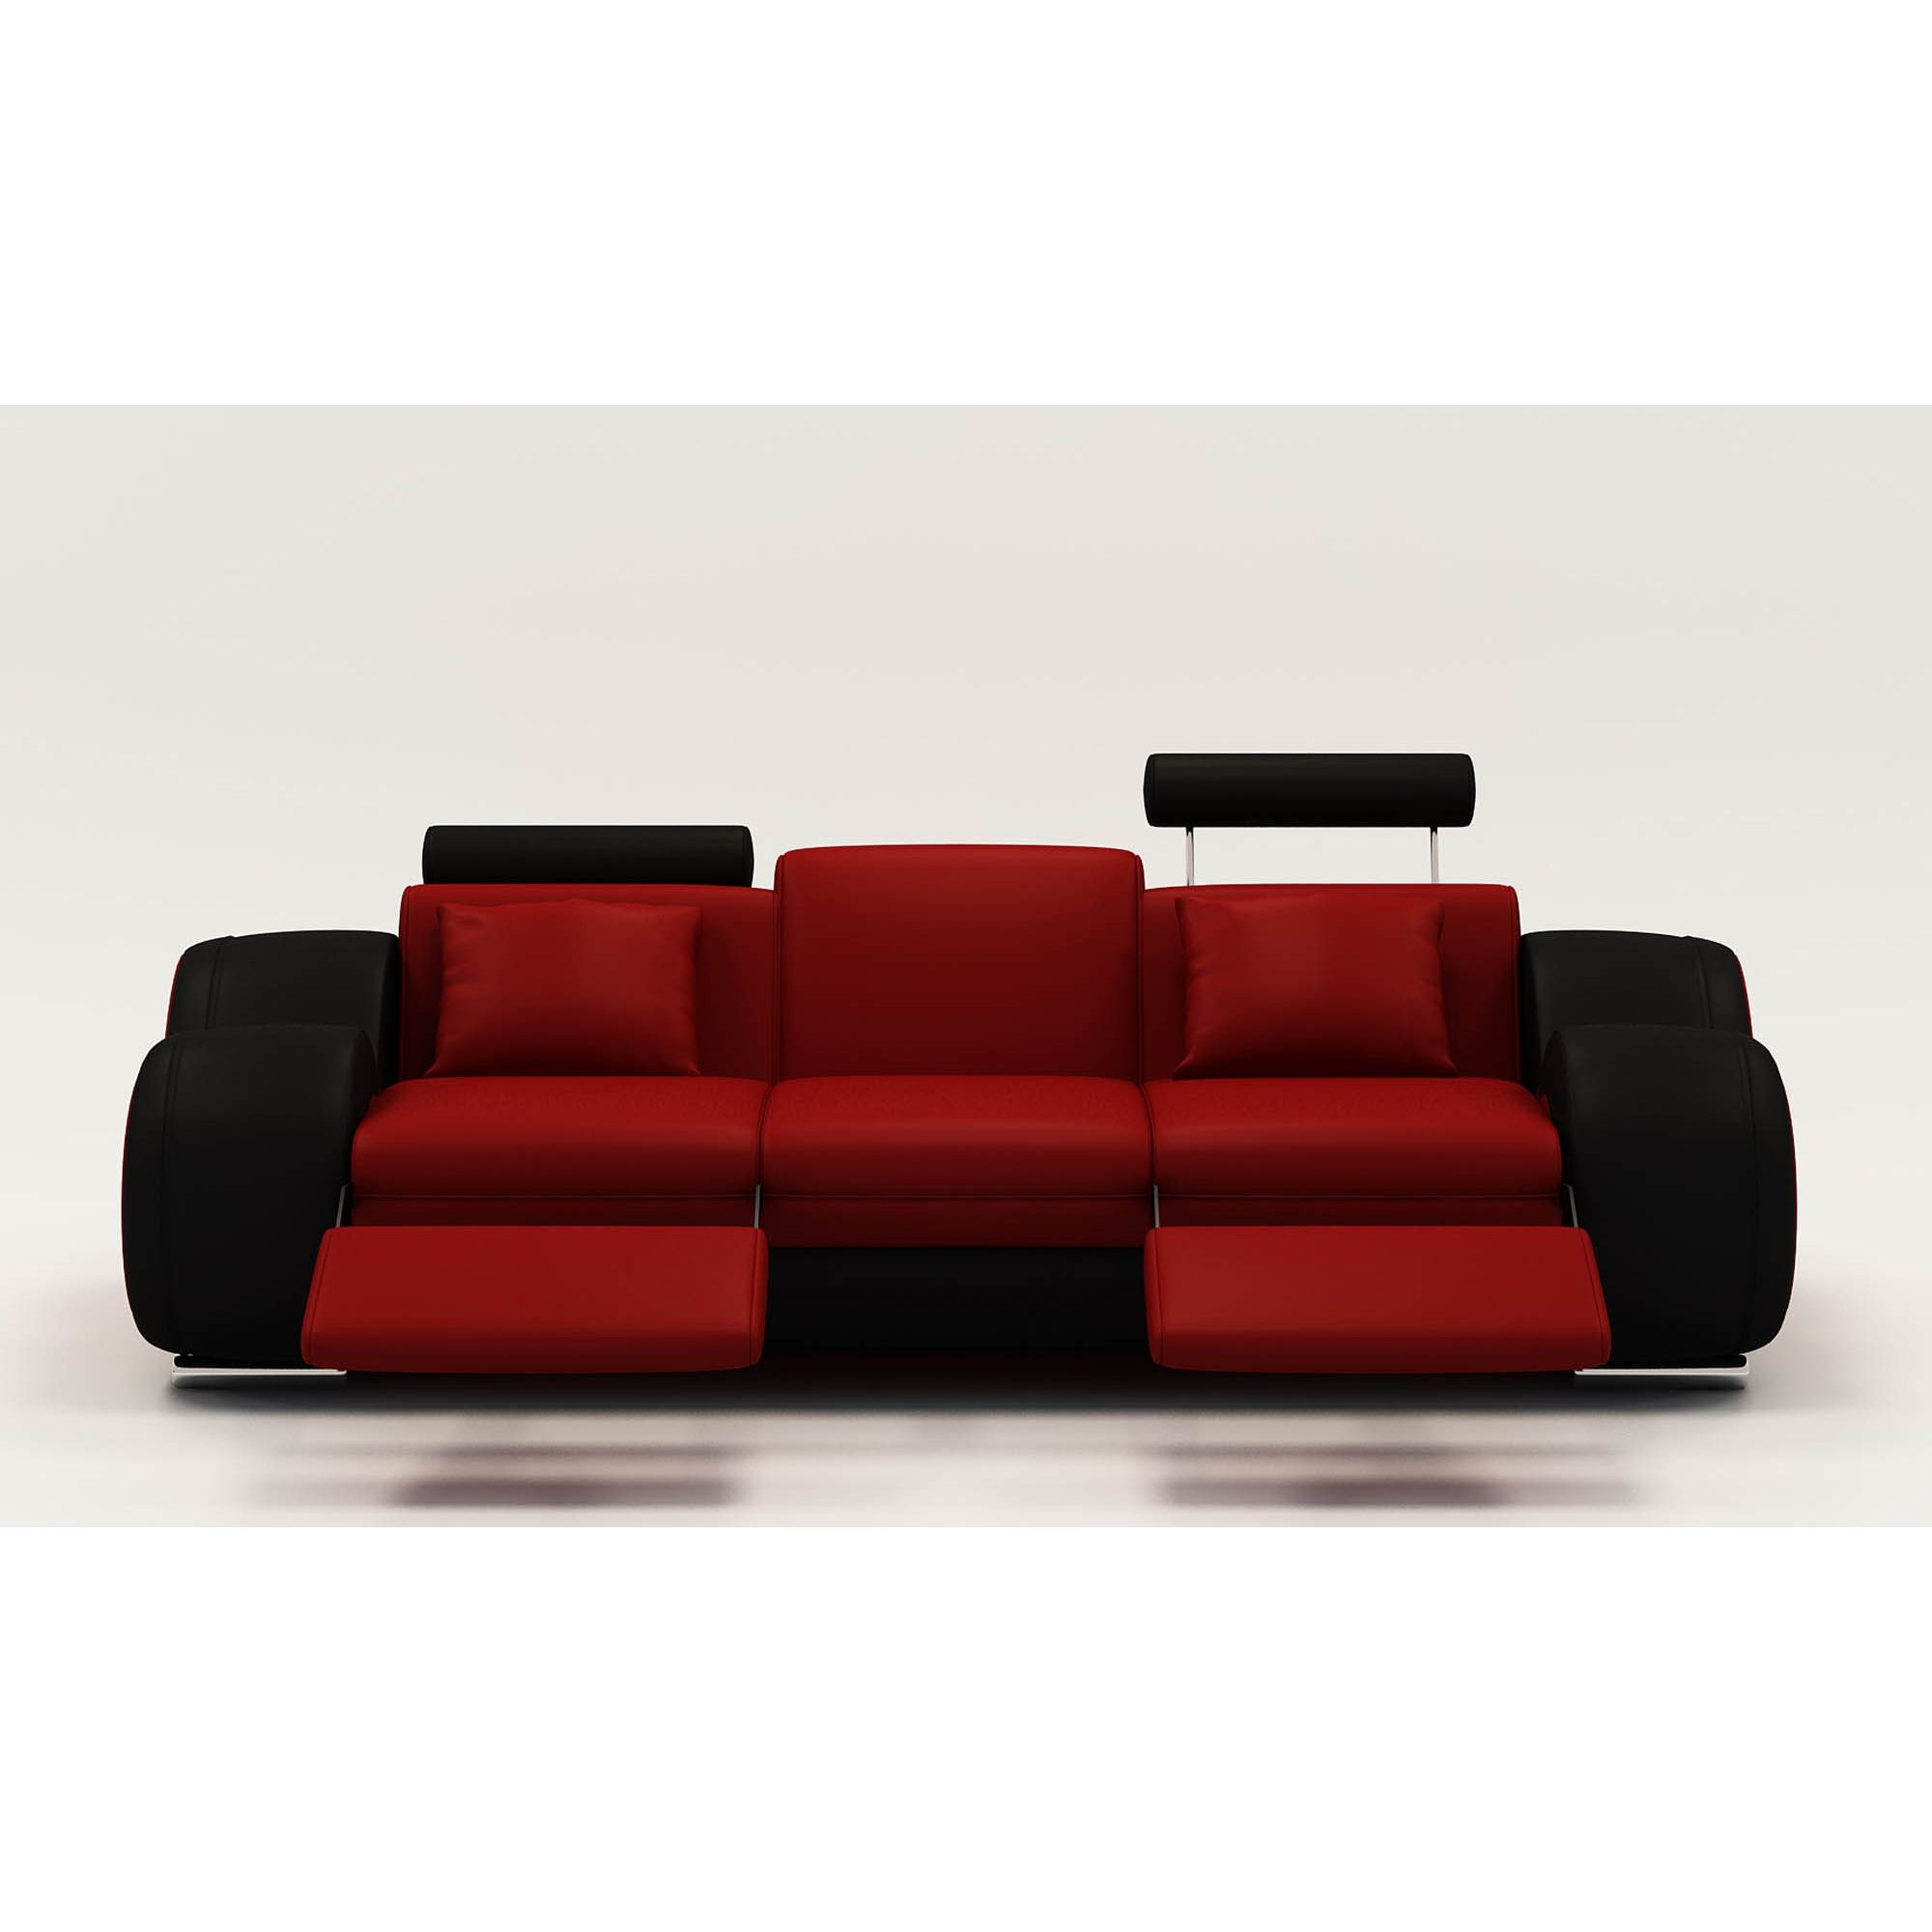 deco in paris ensemble cuir relax oslo 3 2 places design rouge et noir oslo 3 2 rouge noir. Black Bedroom Furniture Sets. Home Design Ideas